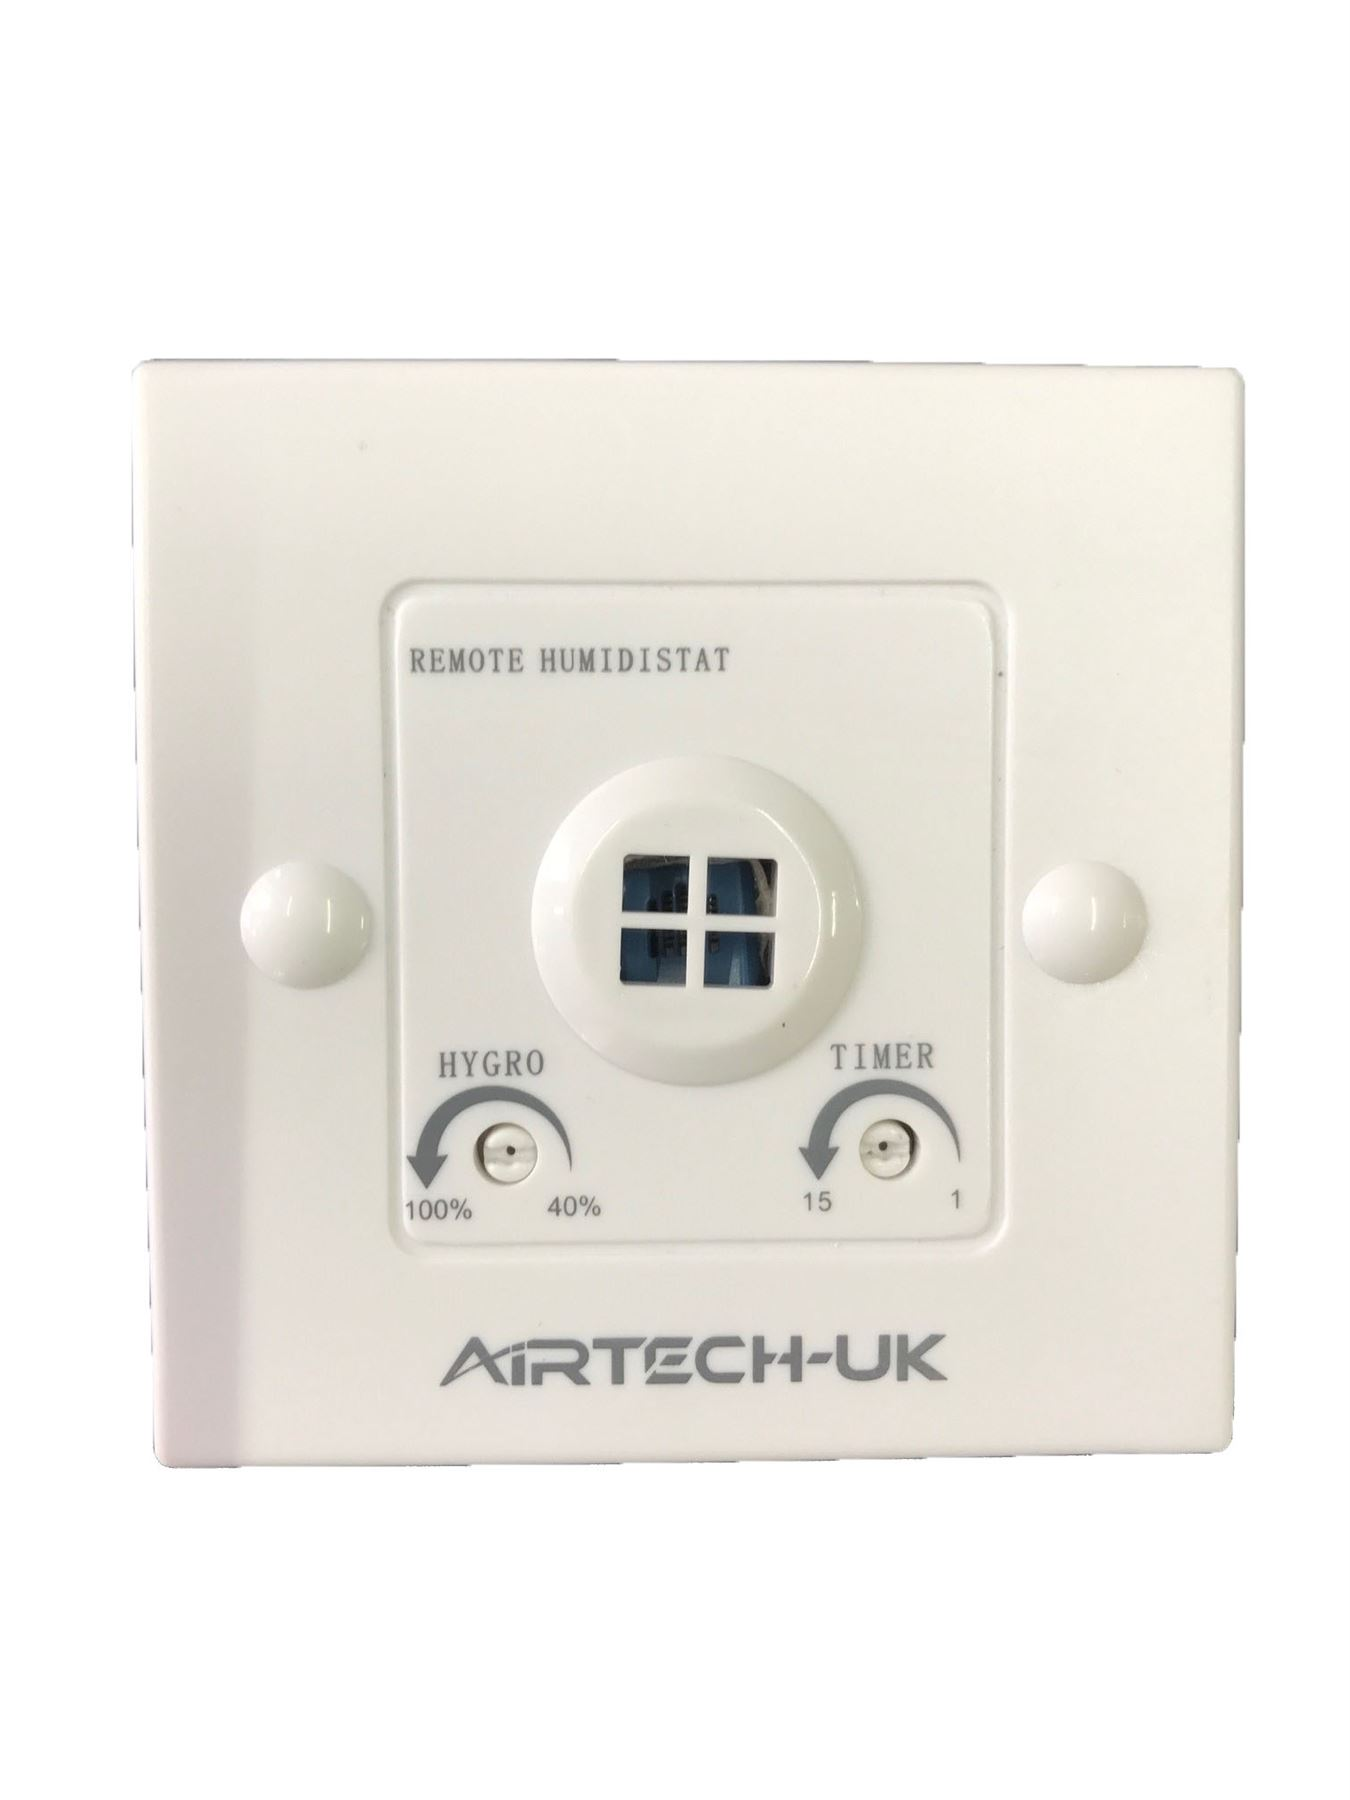 Bathroom Extractor Fan With Light: Extractor Fan Inline Bathroom Run On Timer Humidity Sensor